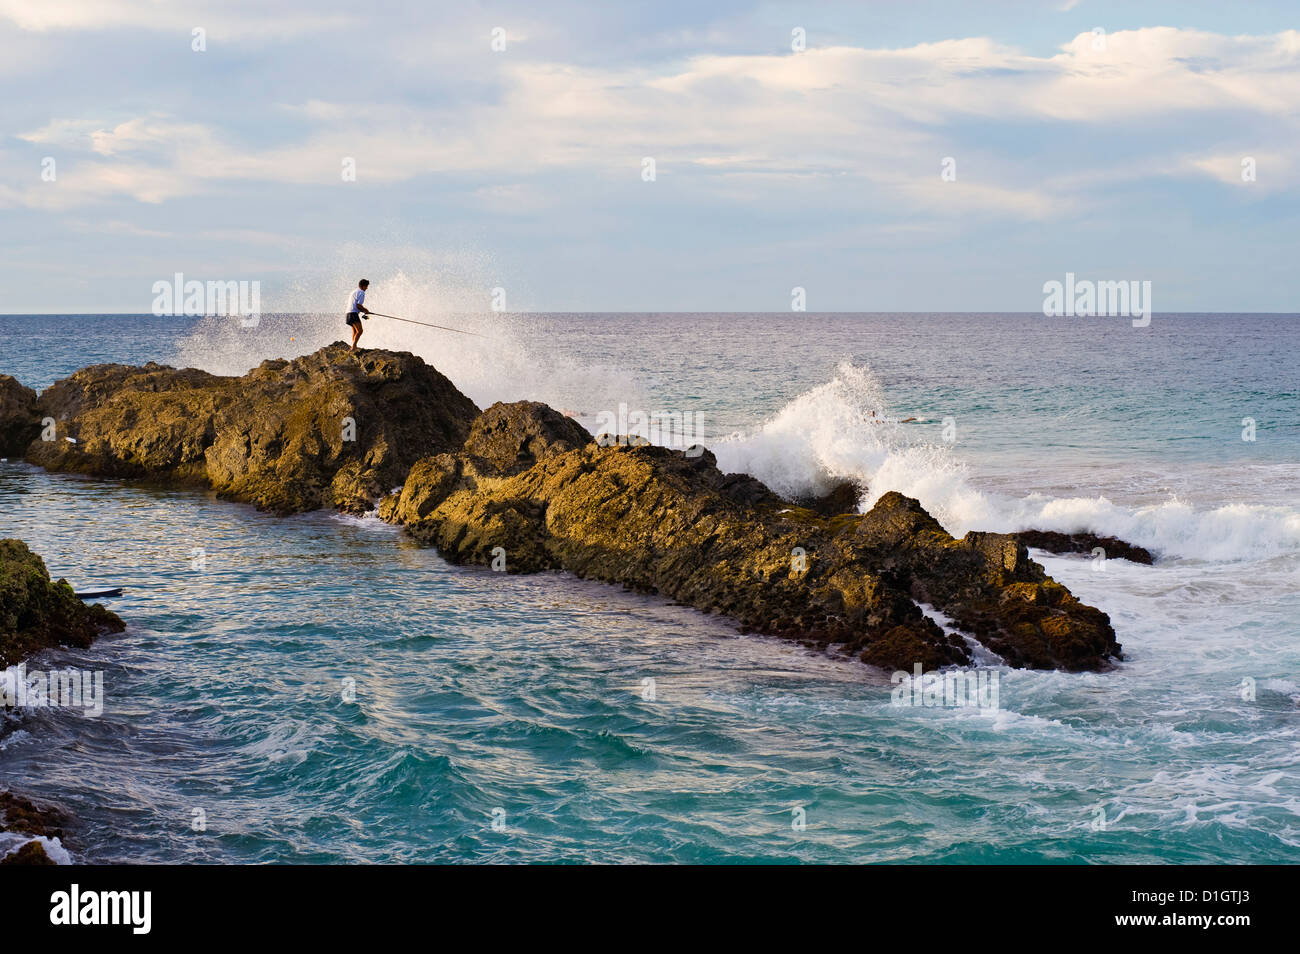 Fisherman getting hit by a wave while rock fishing at Snapper Rocks, Tweed Heads, Gold Coast, Queensland, Australia, - Stock Image